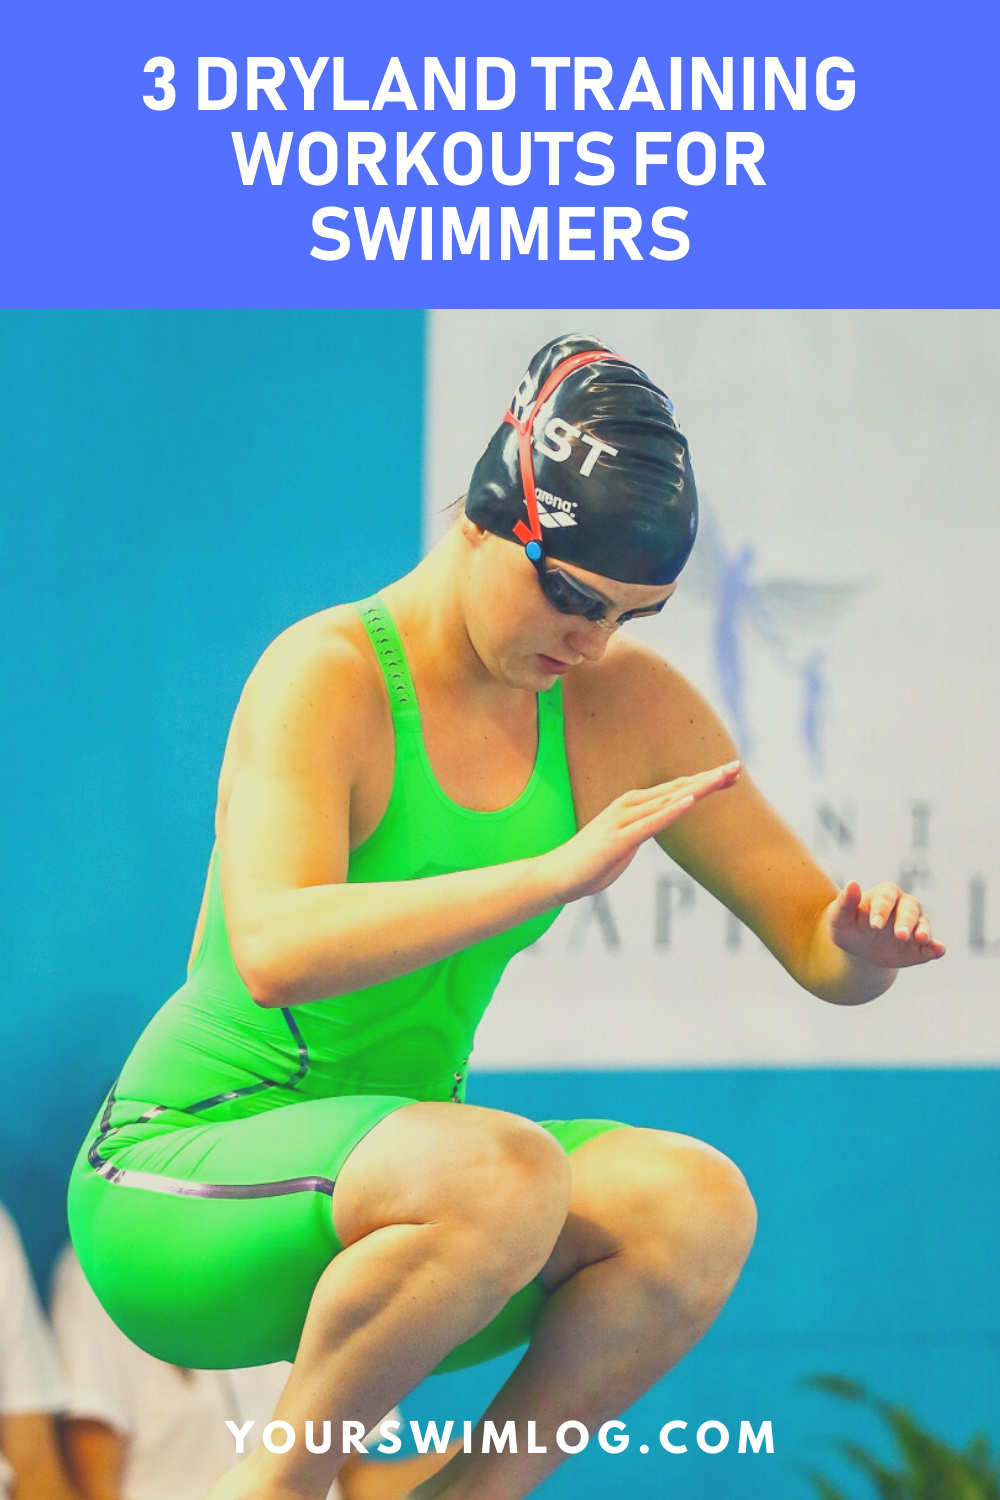 3 Dryland Training Workouts For Competitive Swimmers In 2020 Workouts For Swimmers Dryland Workout Swimmers Workout Dryland